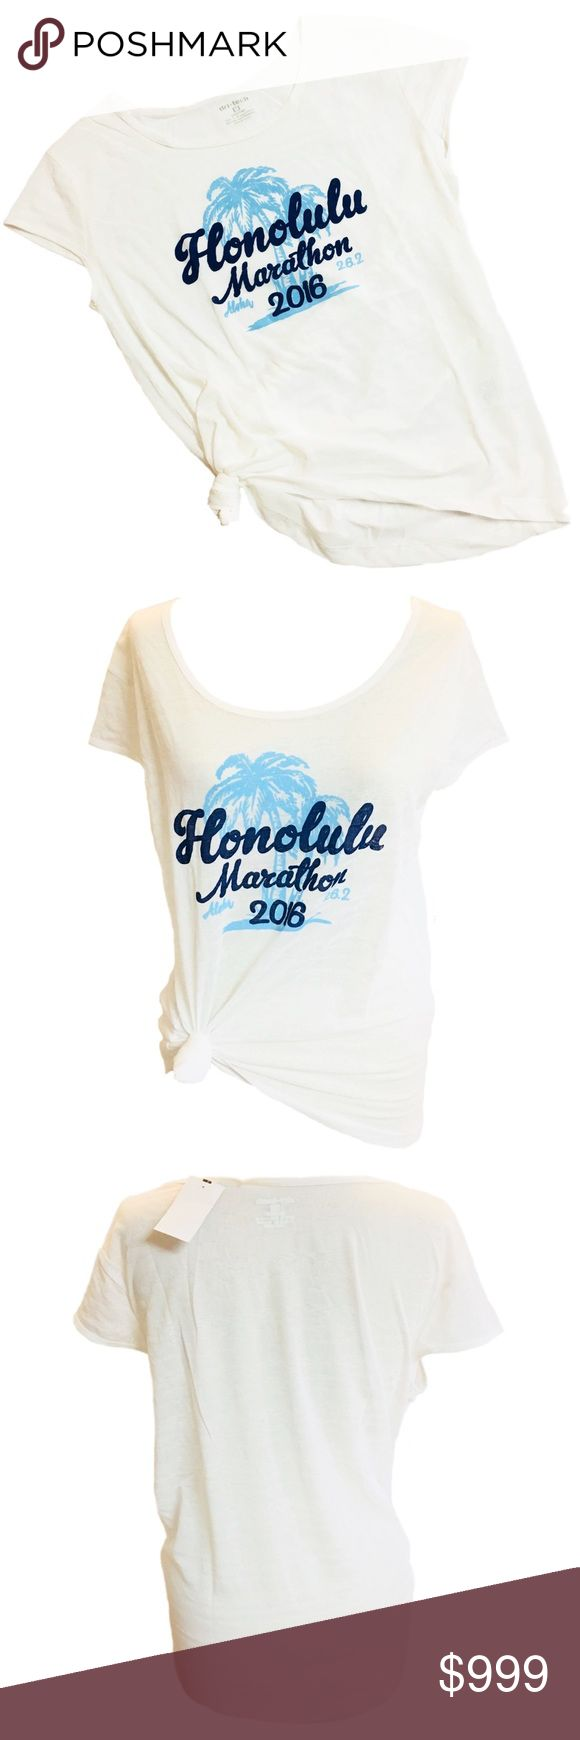 <<New~ Honolulu Sports Running T-Shirt Tee Honolulu Mara-thon Sports Running 2016 Cool Breeze Women's Tee T-shirt Top  CONDITION: New with tags COLOR: Neon Orange  PRODUCT DETAILS:   Layer over a tank top or sports bra for that go to workout look. Great for fitness, working out, Zumba, running, etc..  Lightweight - Great for running & exercise Sheer striped design 100% Polyester 2016 Honolulu Mara-thon Design  #honolulu, Waikiki, Aloha, tropical, Hawaii Tops Tees - Short Sleeve